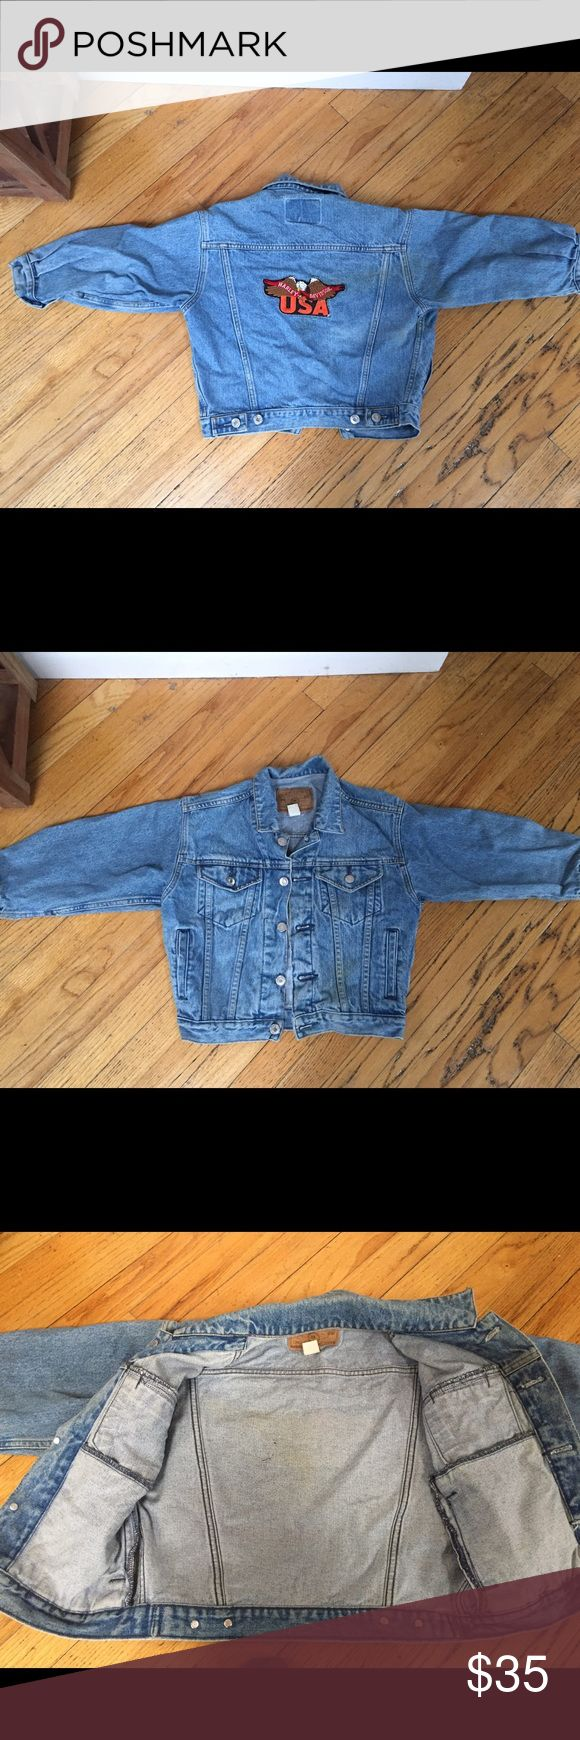 "Harley Davidson GAP Kid's-Size Denim Jacket Harley Davidson GAP Kid's Size Denim Jacket Logo linen patch on back, Collar to hem 19"", Waist 14"", Sleeve from shoulder to cuff 15"". Excellent condition with shiny, unscratched buttons, distressed-look leather label. Size label reads S/P but dimensions are for kid-fit not small adult fit GAP Jackets & Coats Jean Jackets"